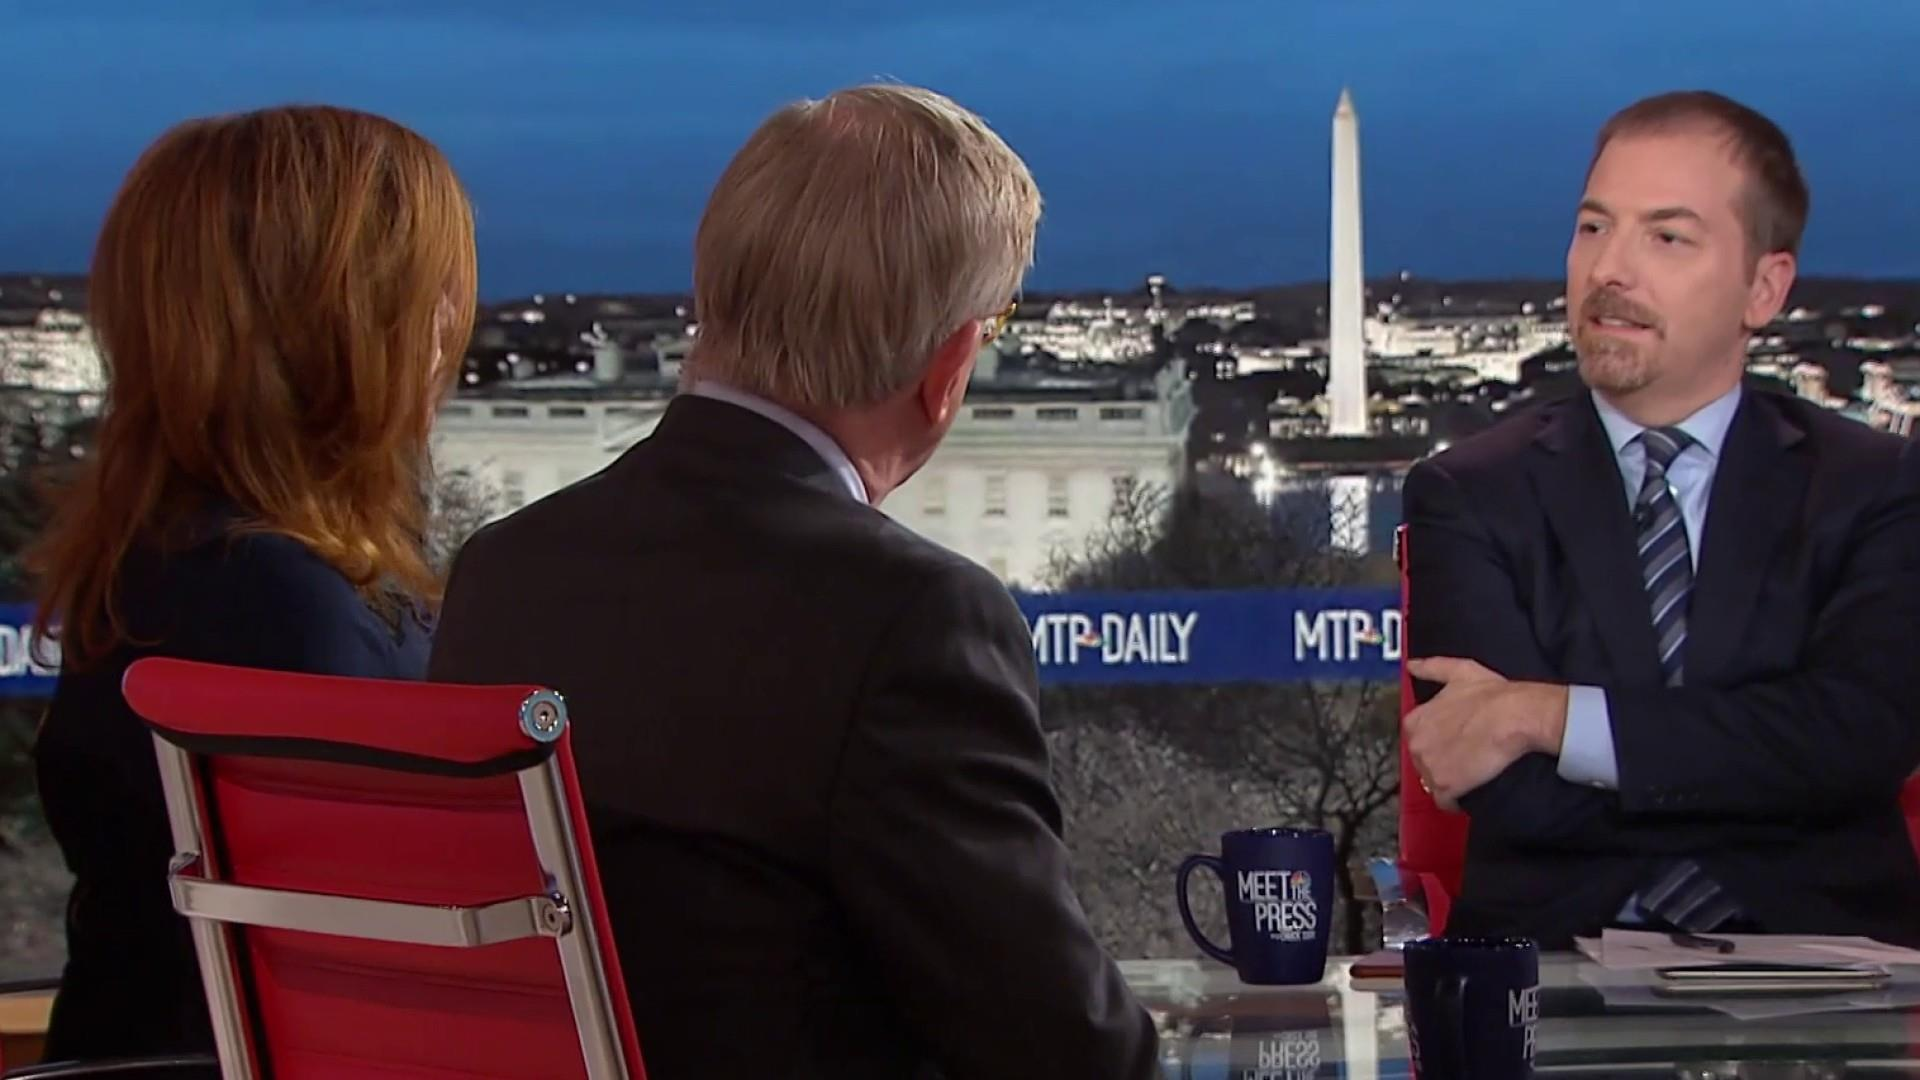 Full Panel: Maureen Dowd, Karen Tumulty, George Will and Andy Card remember George H.W. Bush